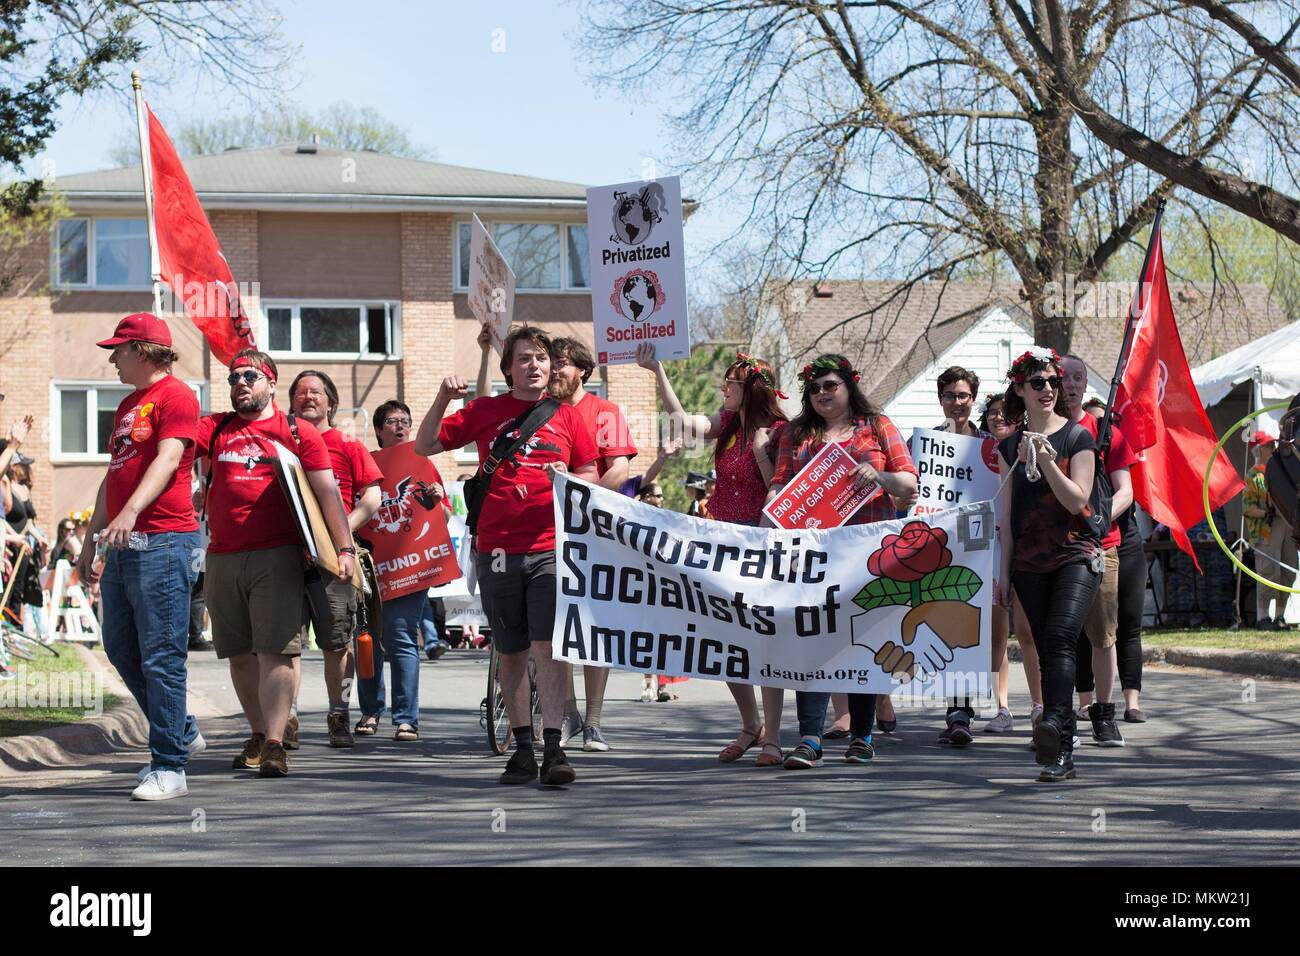 Democratic Socialists of America marching at the May Day parade and festival in Minneapolis, Minnesota, USA. - Stock Image